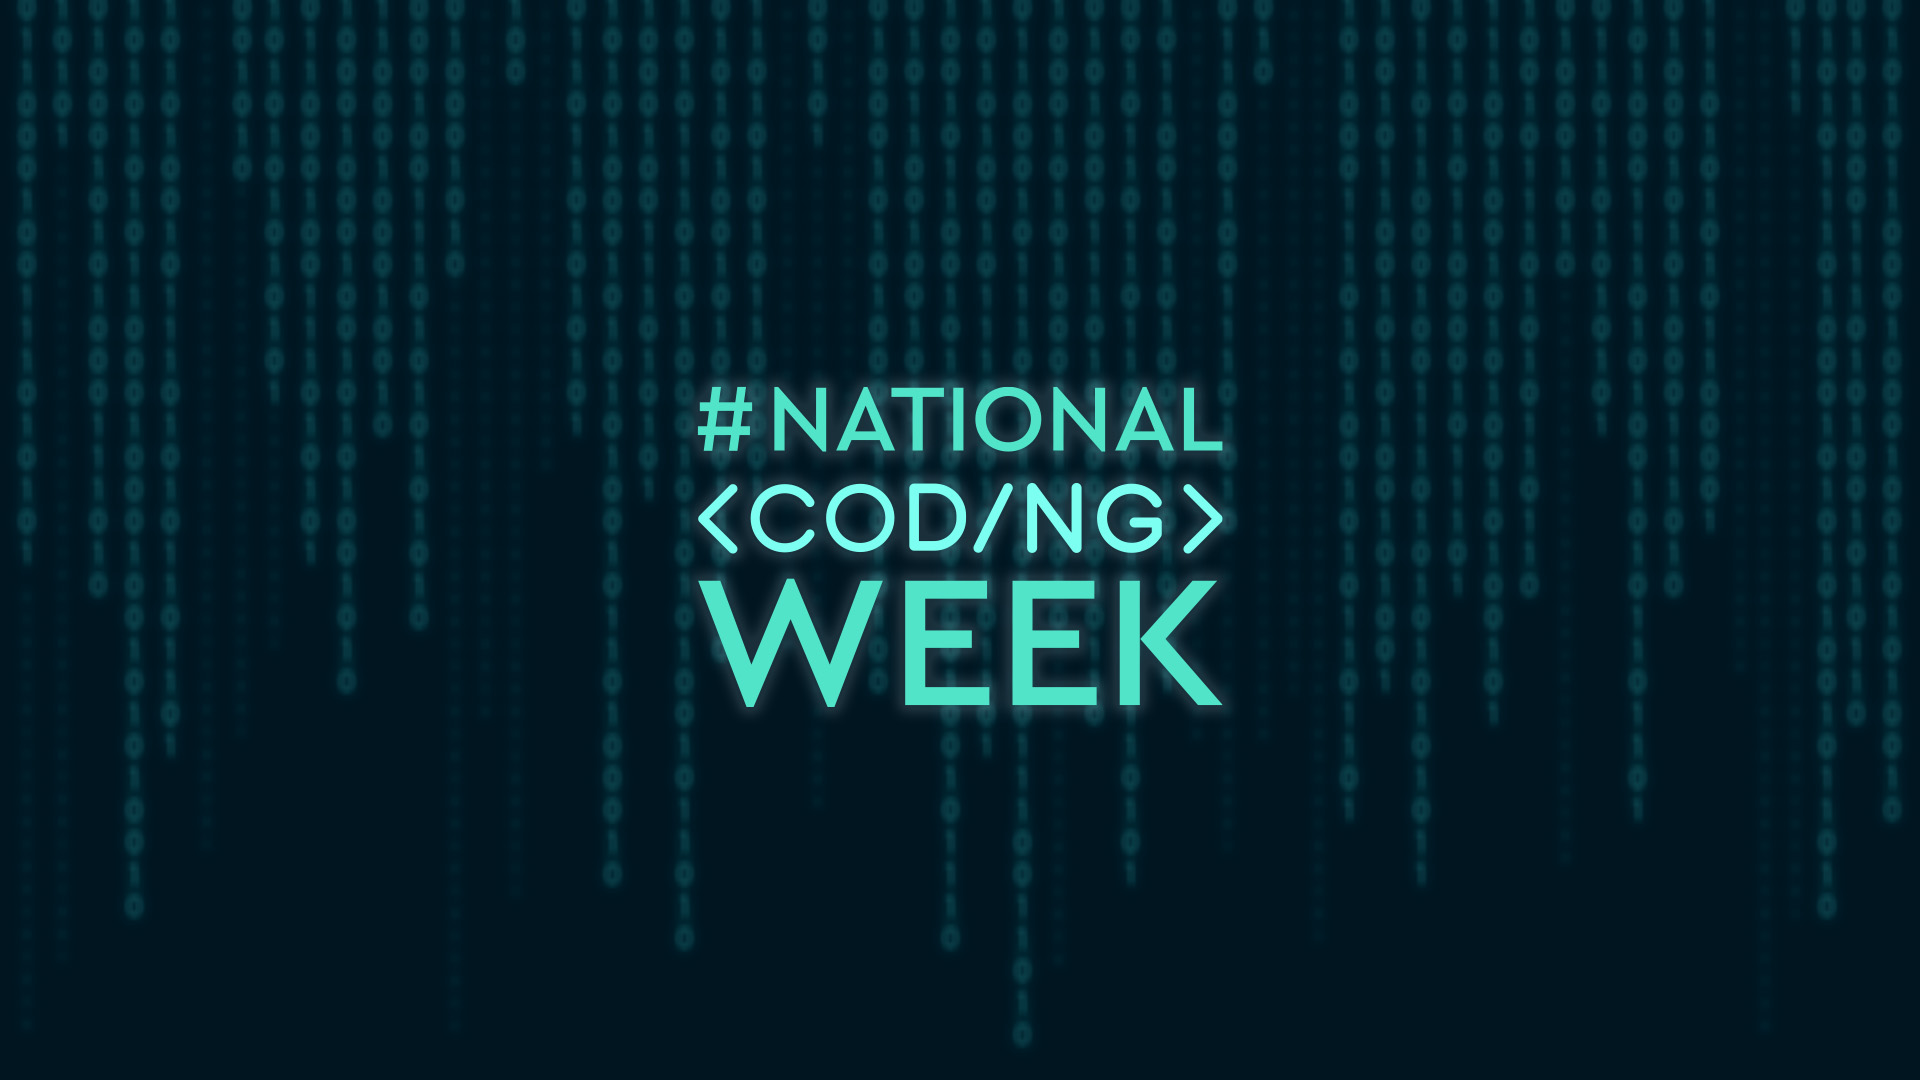 Coding background with the words National Coding Week in highlighted text above